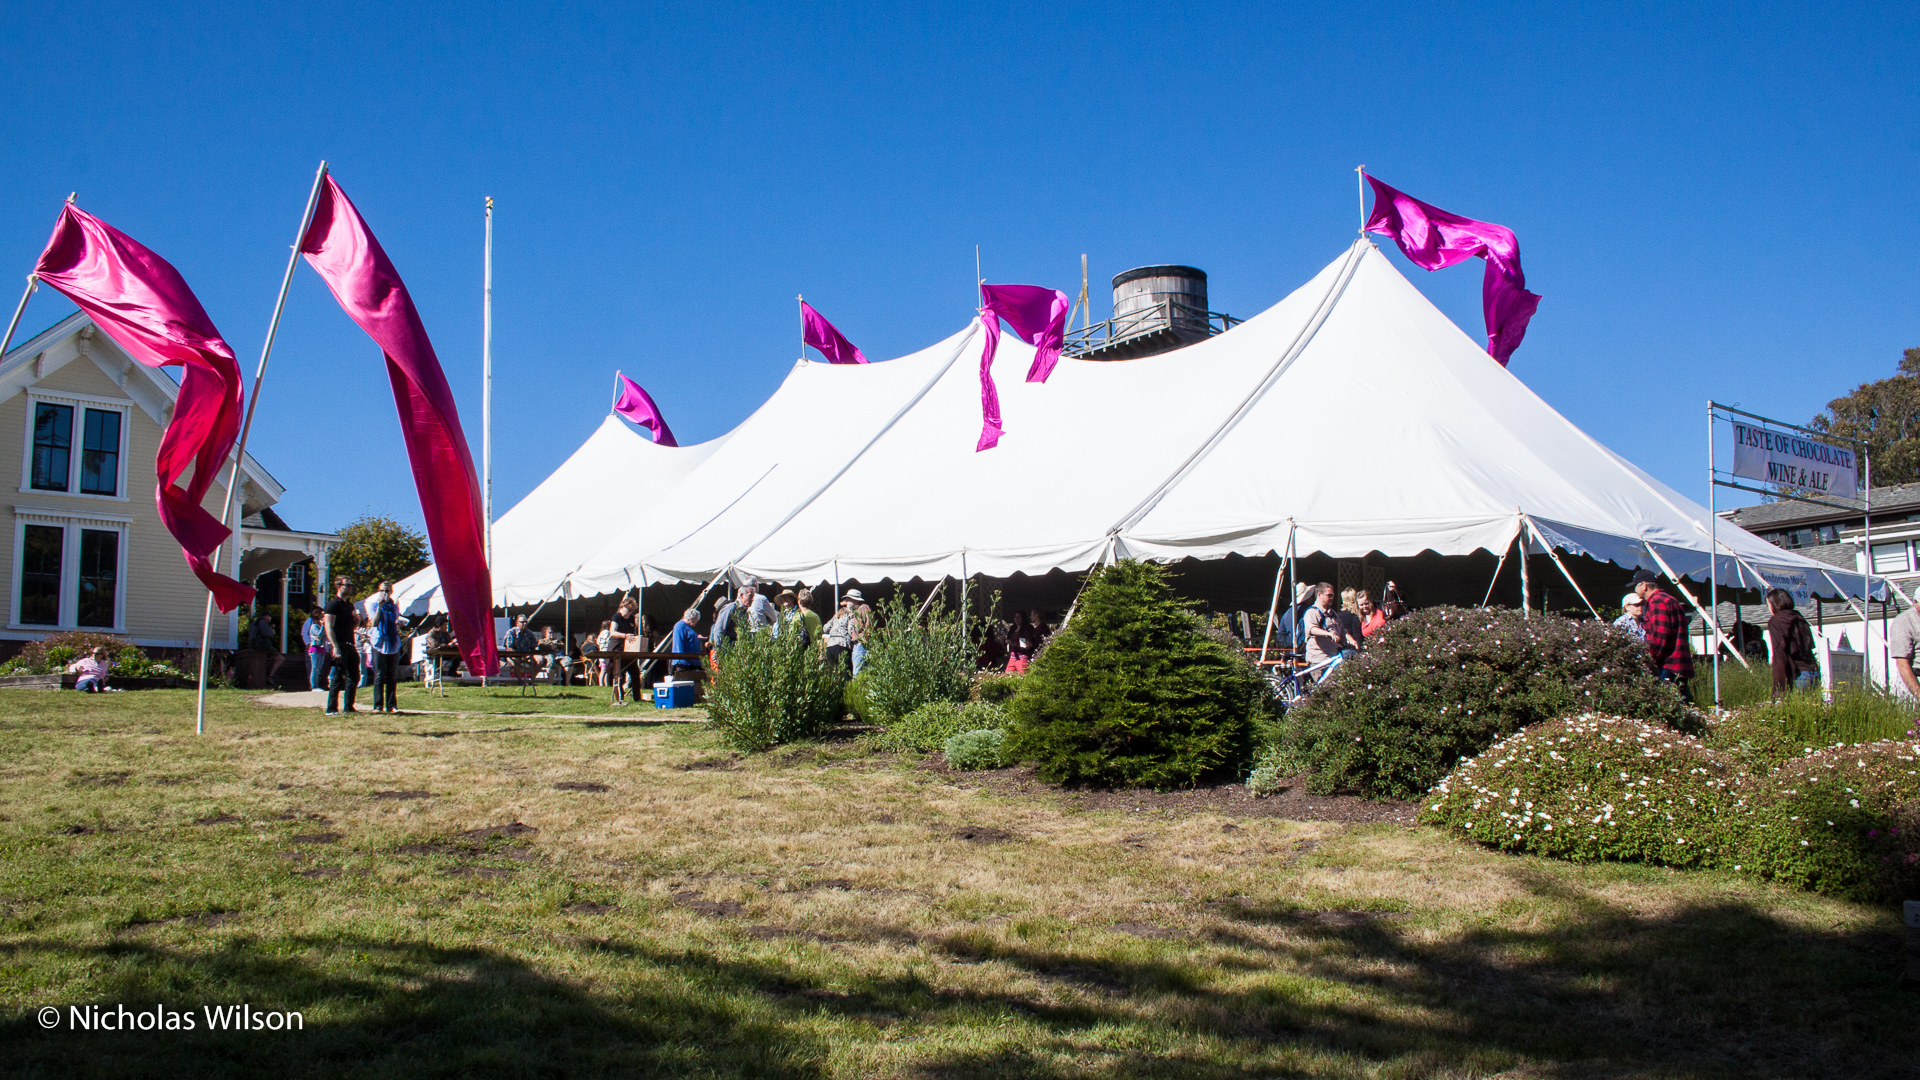 Event Tent Rental Specialists & Festival Tent Rentals u2013 Affordable Event Tent and Related Equipment ...